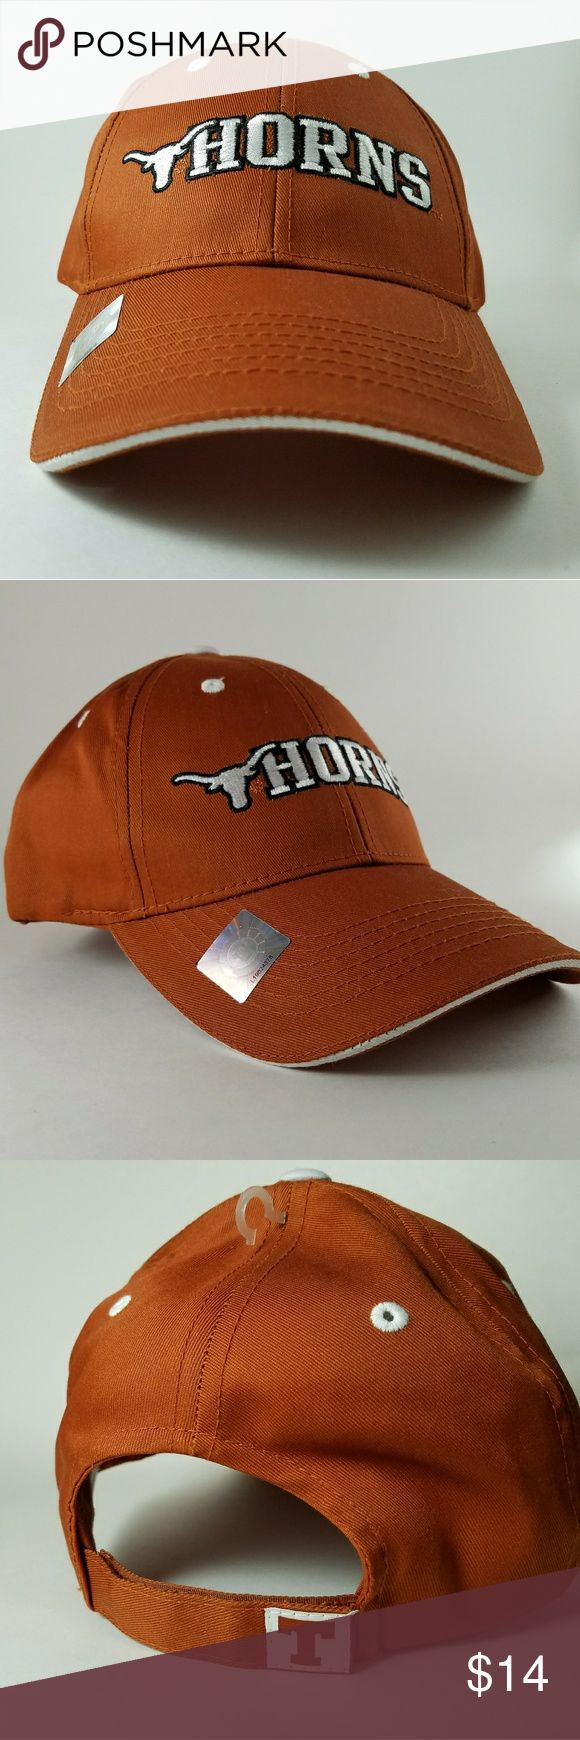 NEW! Longhorns Baseball Hat. One Size NEW Longhorns Baseball Hat One Size No tags but NEW  Velcro Great for UT GAMES or for everyday wear! 65% Polyester and 35% Cotton   This hat is meant to be worn in UT games and on sunny days. Keep this hat's legacy this summer by wearing it outside and showing UT spirit. I hope you love this hat as much as I loved buying it! Lol.   If you have any questions please feel free to drop me a comment below!  Prices are negotiable- just ask!  Thank you for…